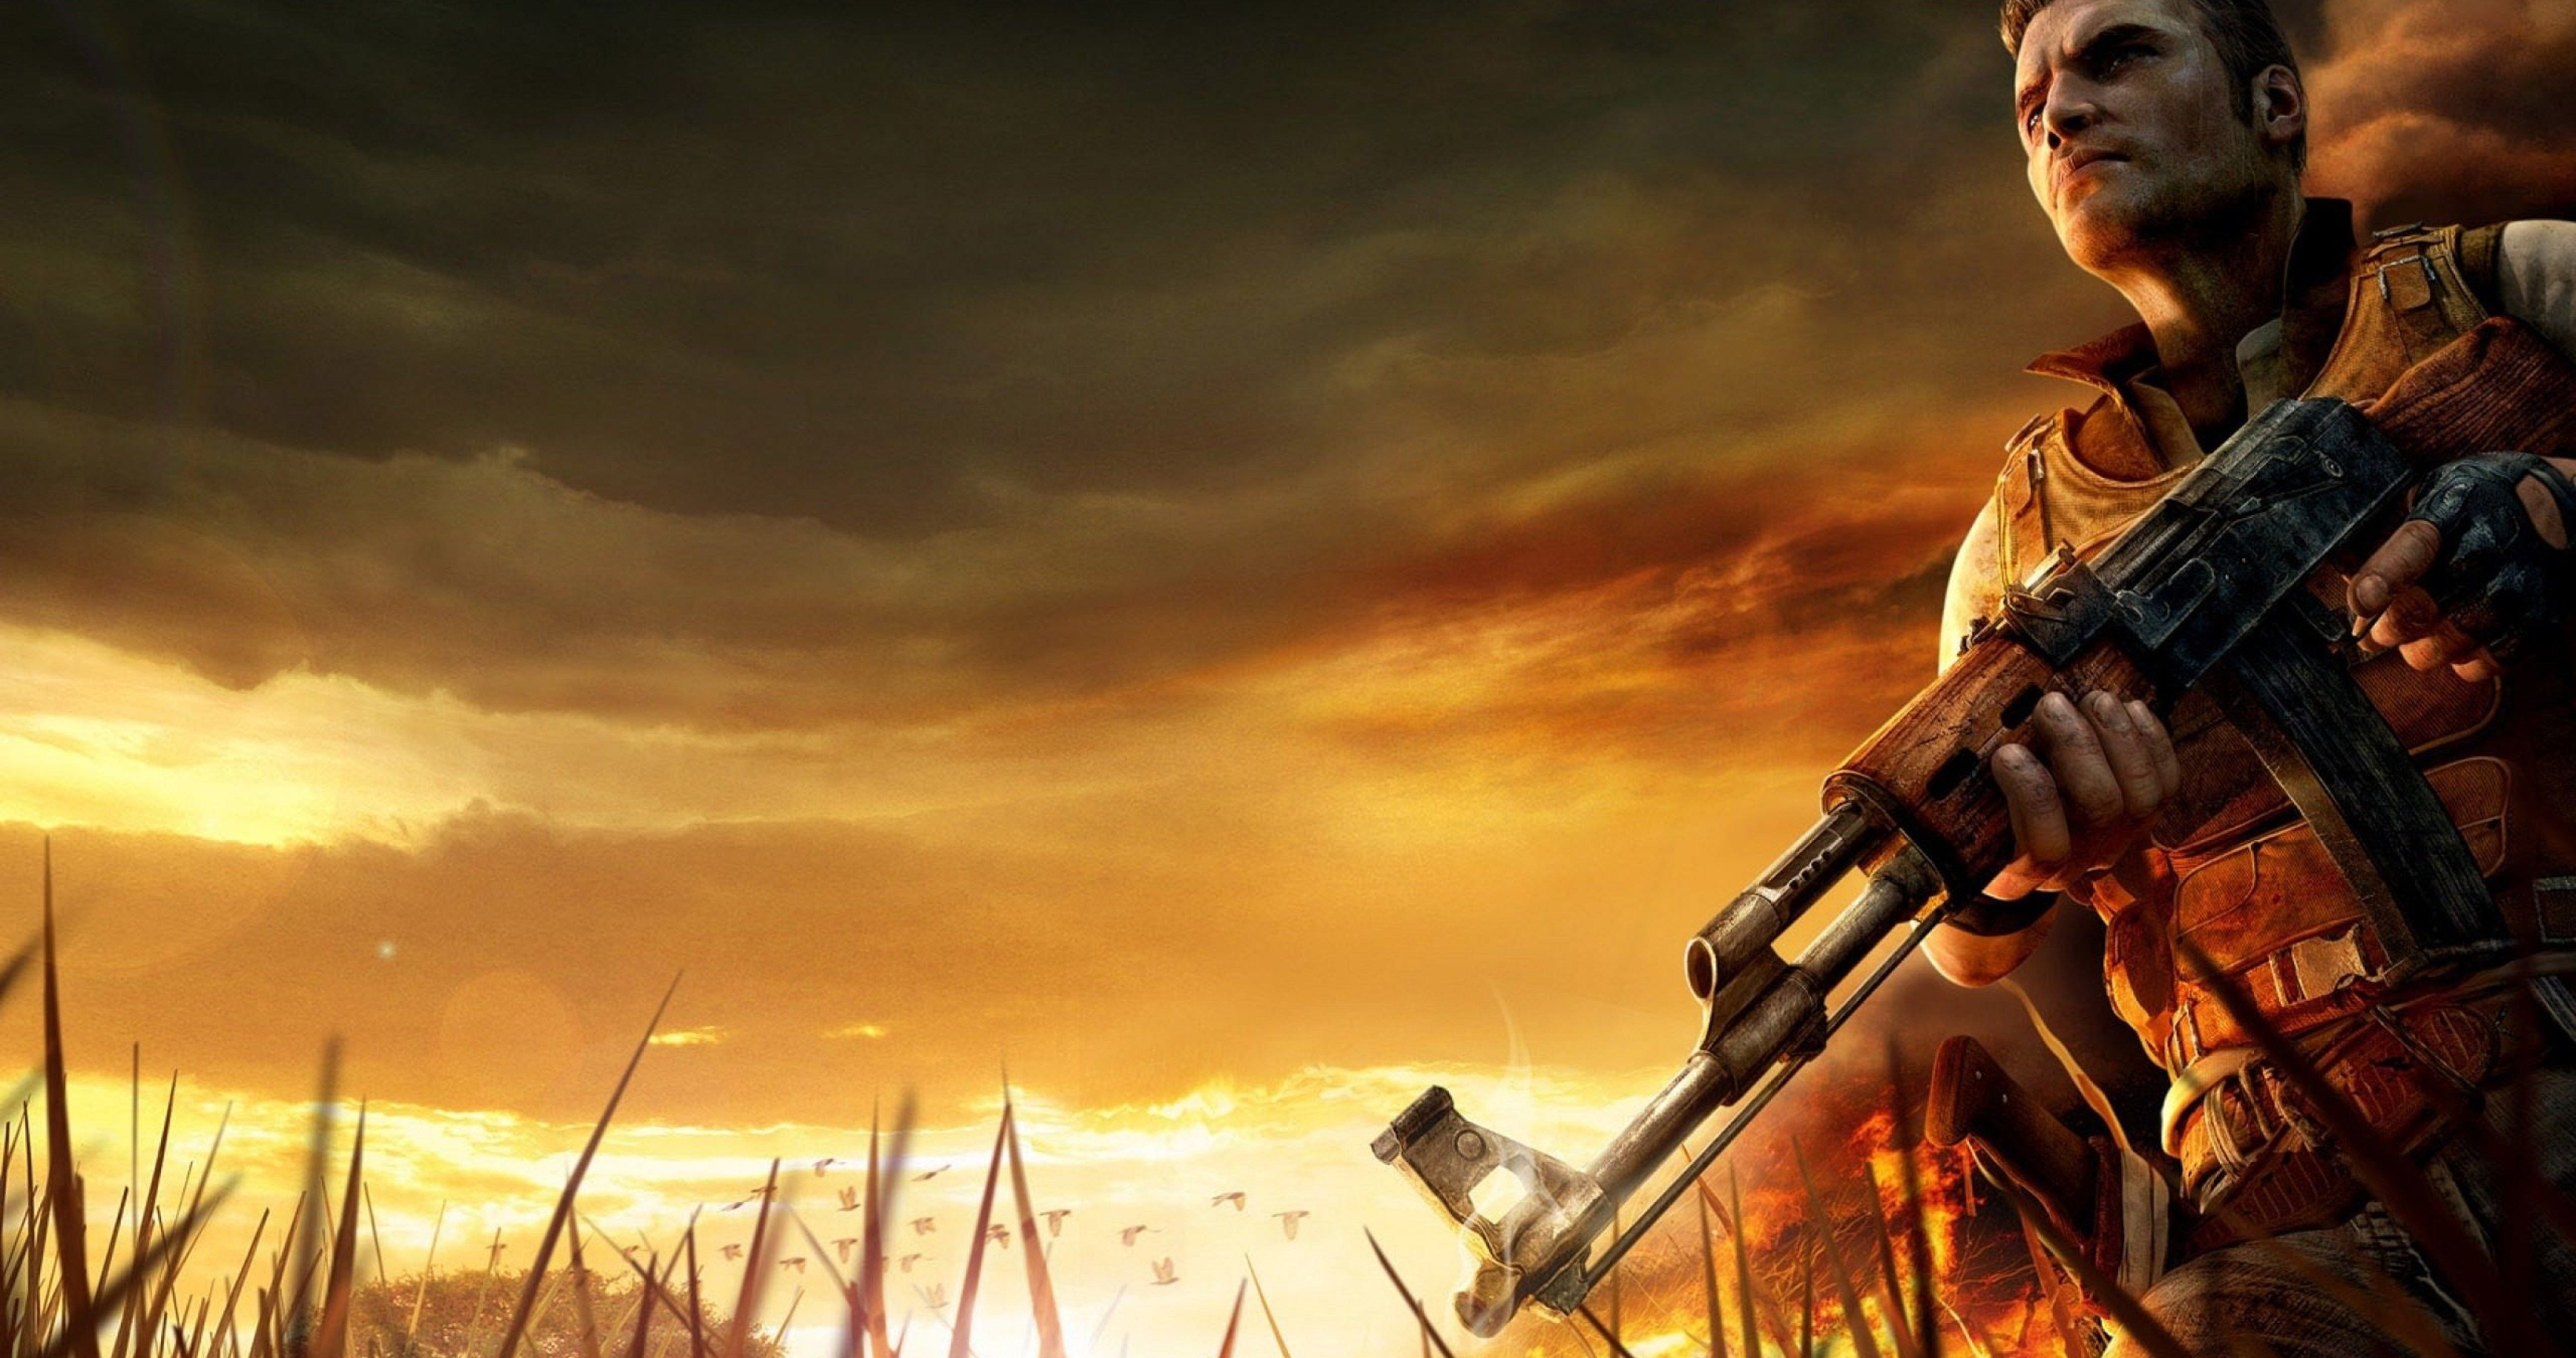 Far Cry 2 Wallpapers Top Free Far Cry 2 Backgrounds